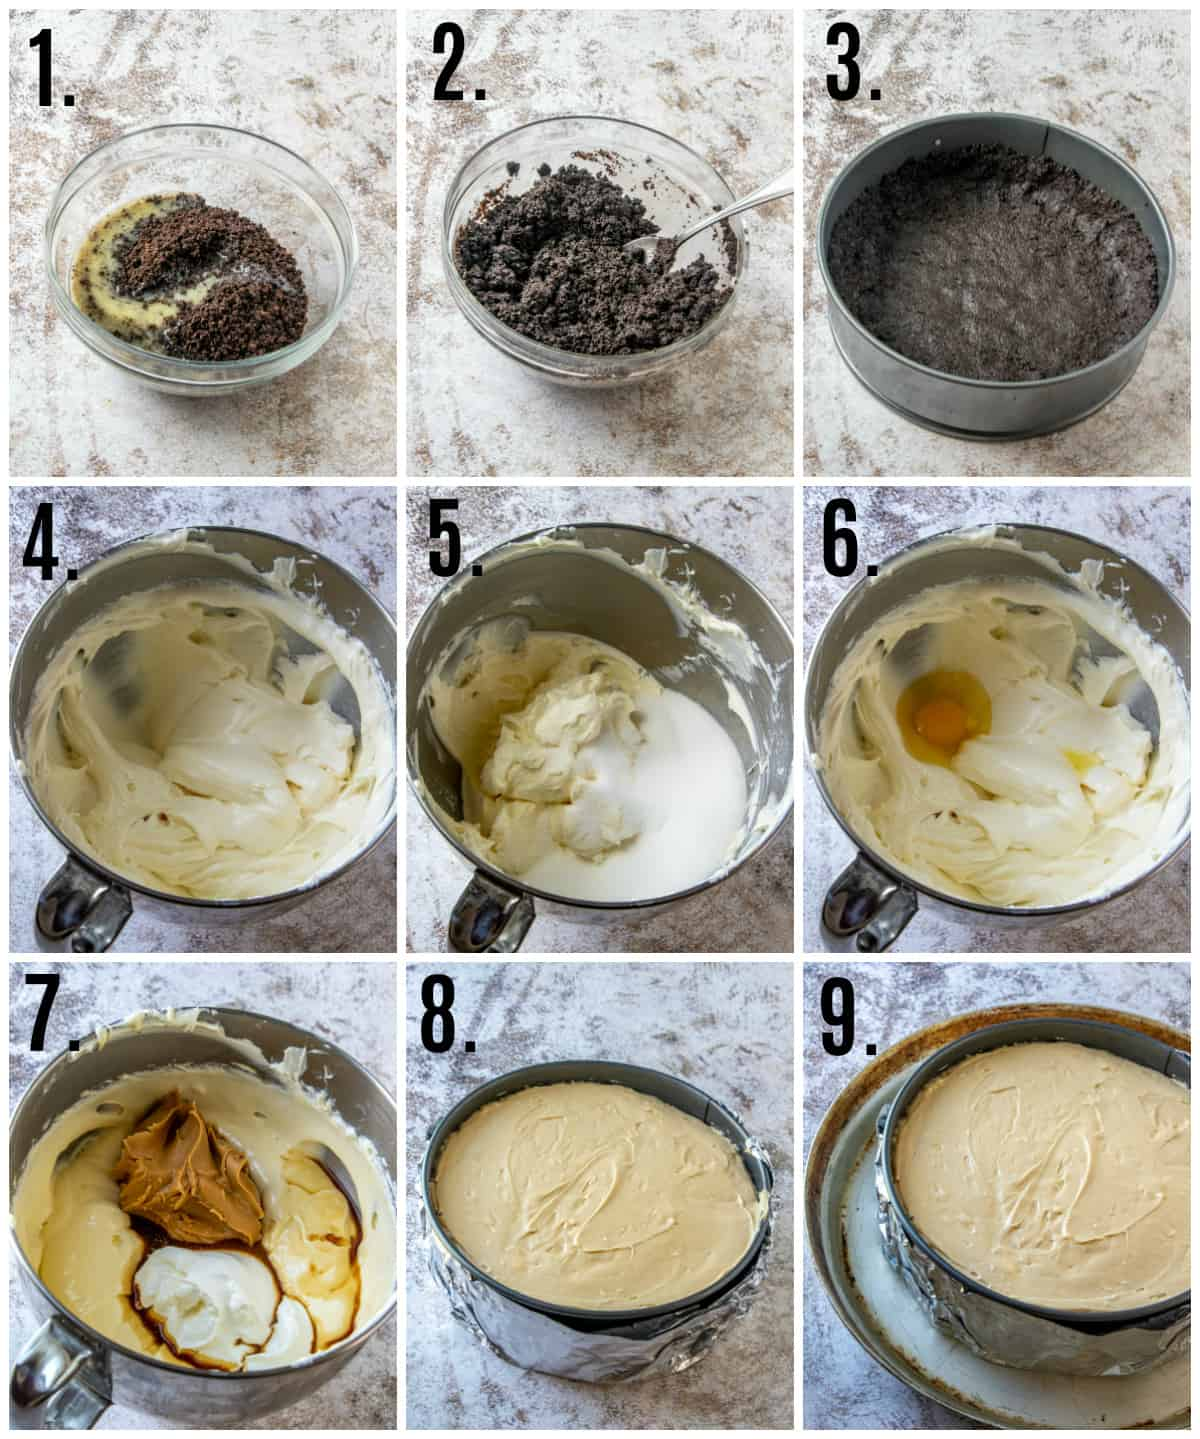 Step by step photos on how to make Peanut Butter Cheesecake